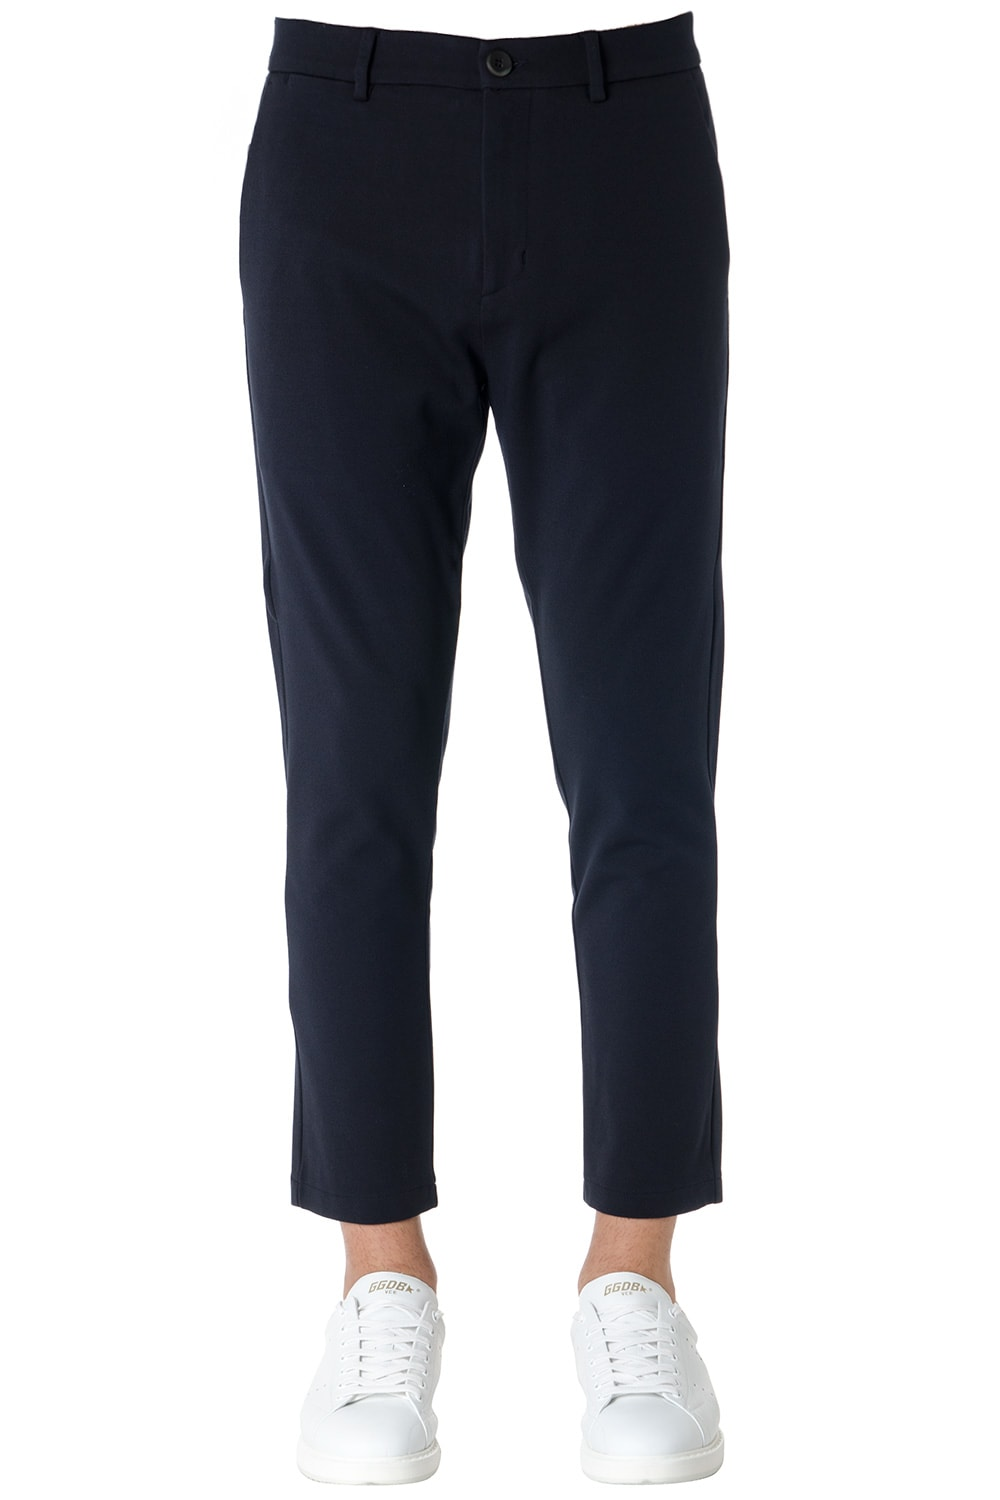 Low Brand Slim Fit Navy Trousers